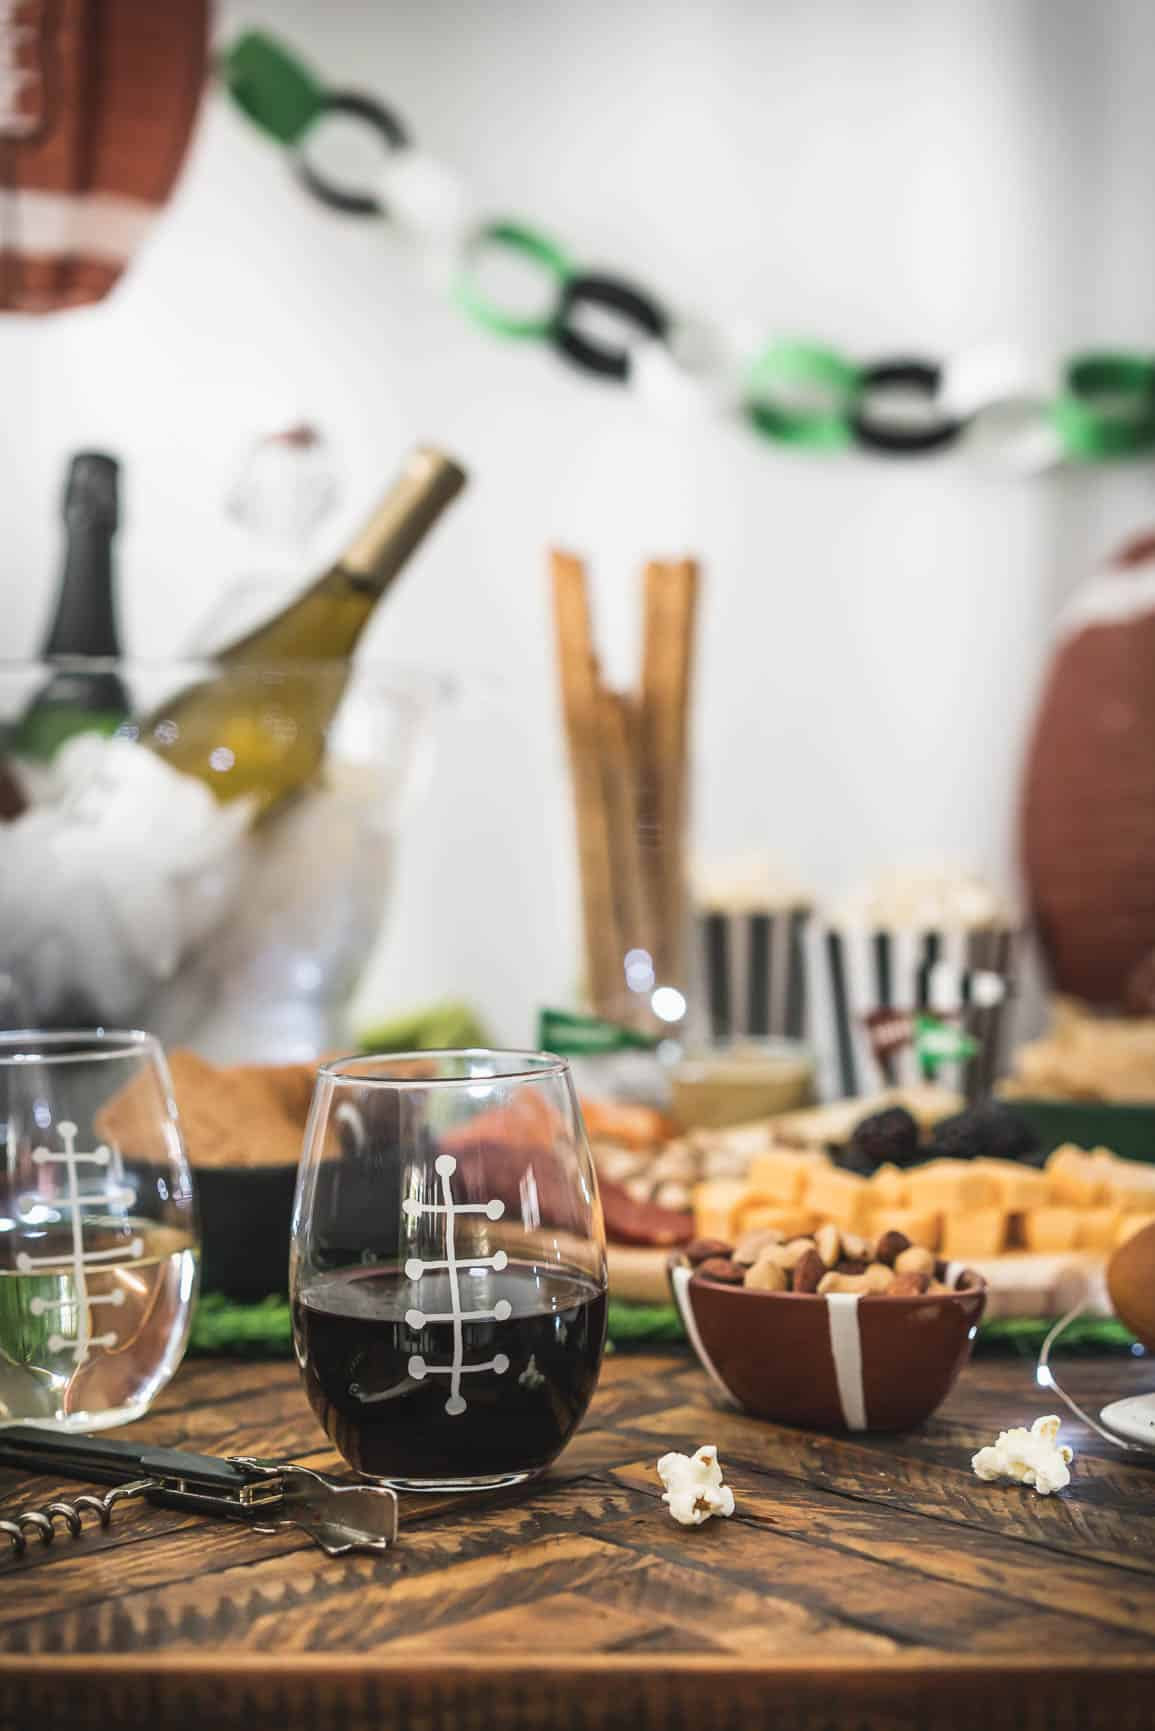 These tips are just for game day parties, they are the easiest way to make any gathering wine-friendly.